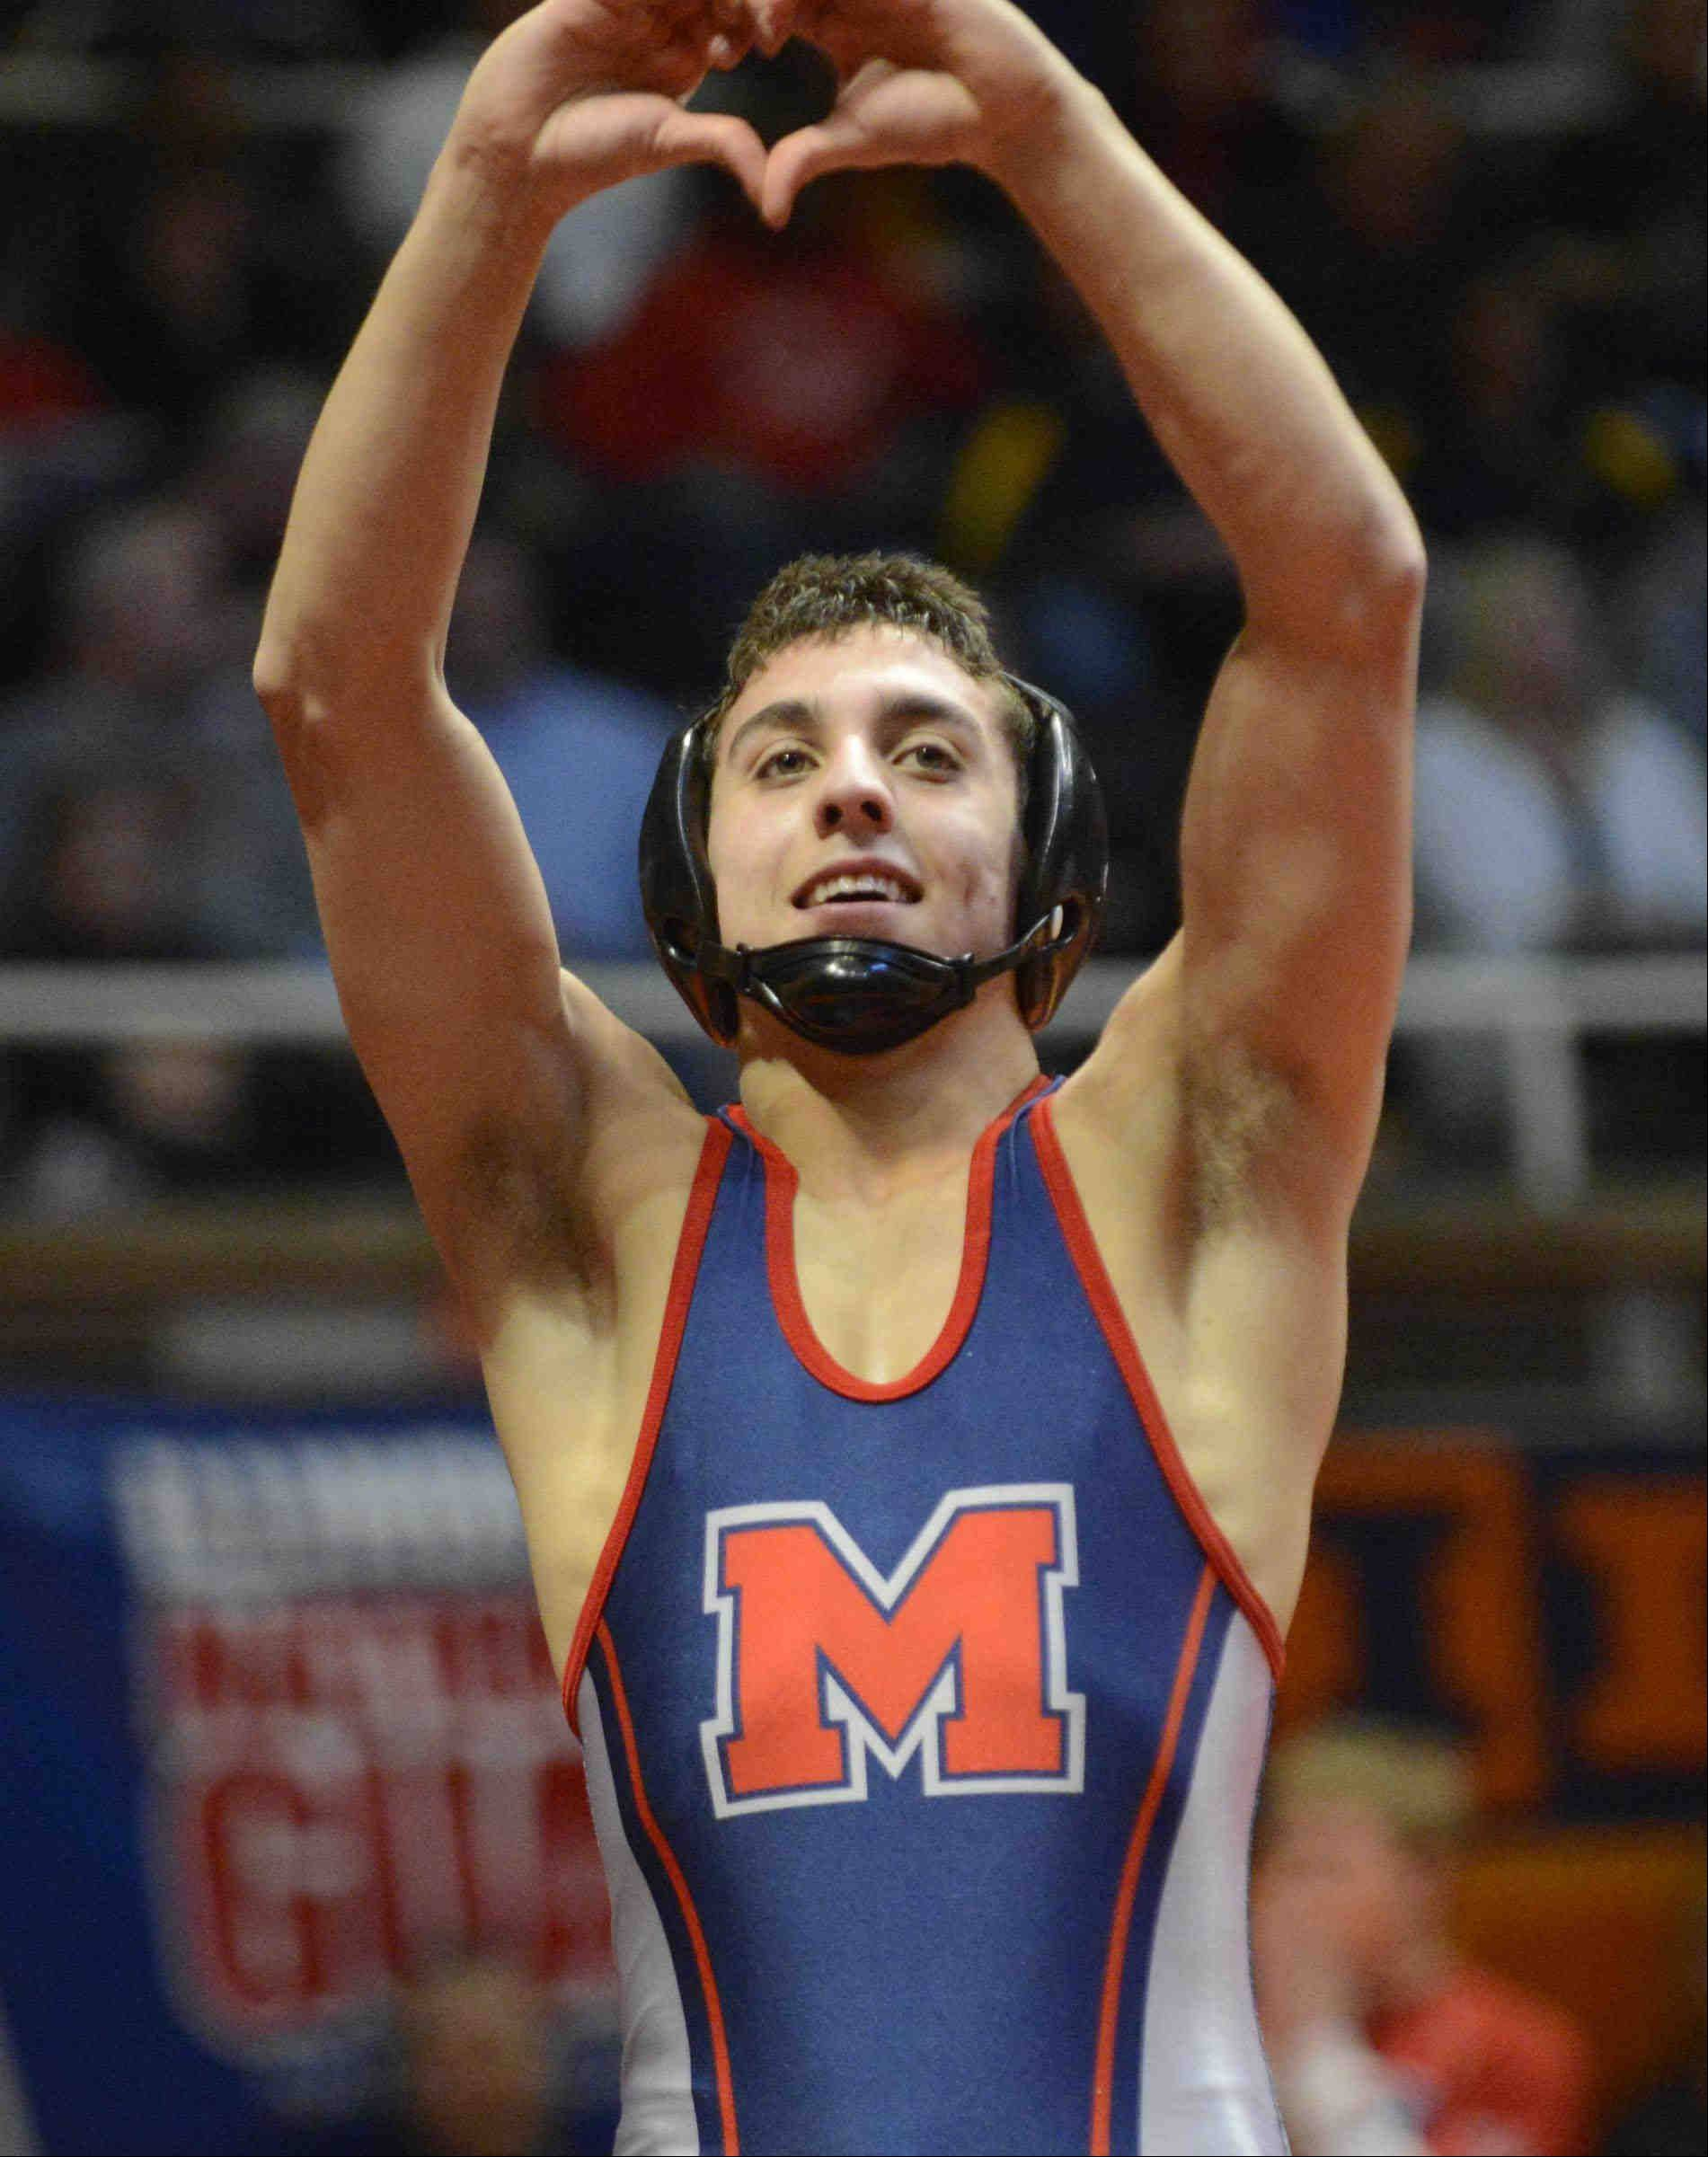 Marmion Academy's Johnny Jimenez signals the crowd after defeating Sebastian Pique of Sandburg in the Class 3A 120-pound IHSA championship final wrestling match at Assembly Hall in Champaign.